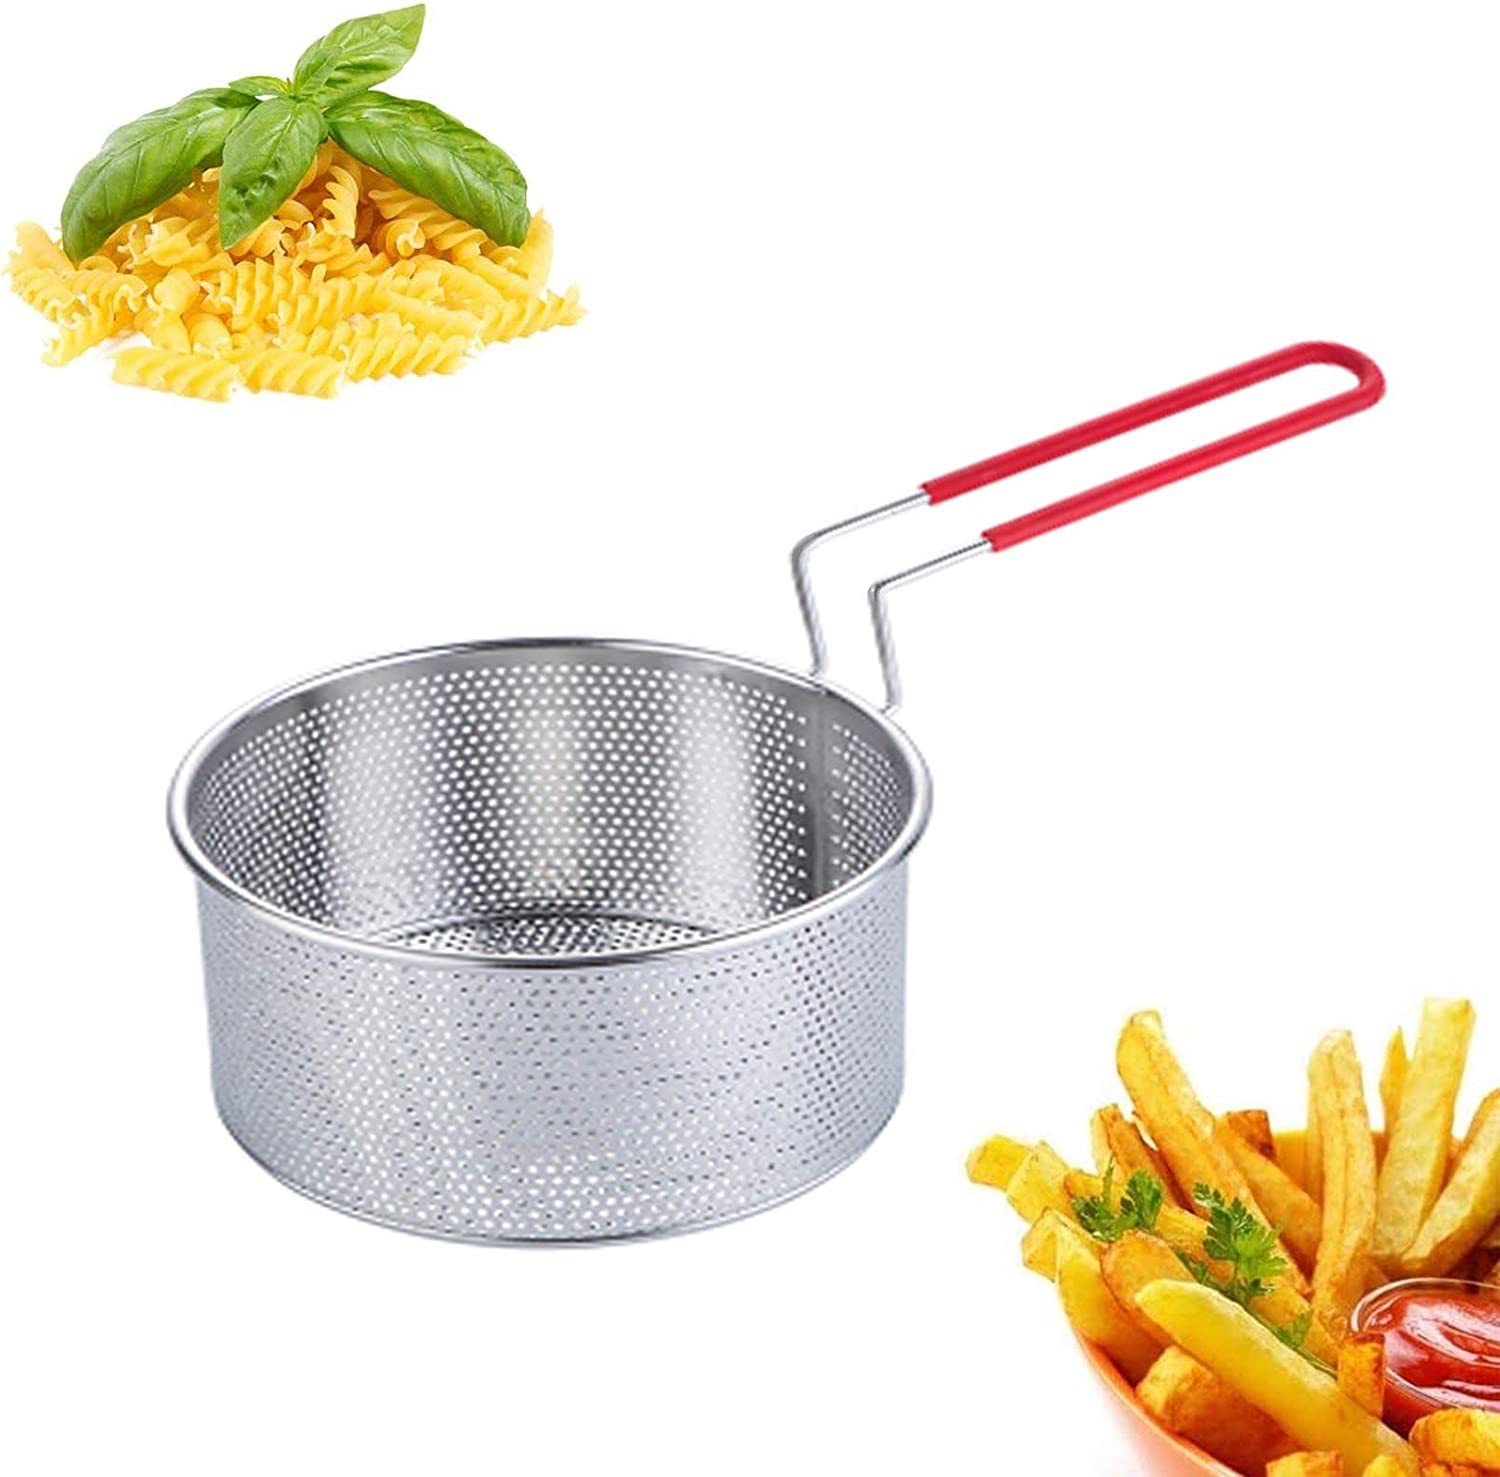 Deep Fry Basket—Stainless Steel Turkey Frying Baskets for Pot Mini Fish Fryer Strainer with Handle 7 Inch Anti Rust Round Wire Skimmer of Equal Mesh Holes Hand Held Strainers for Kitchen